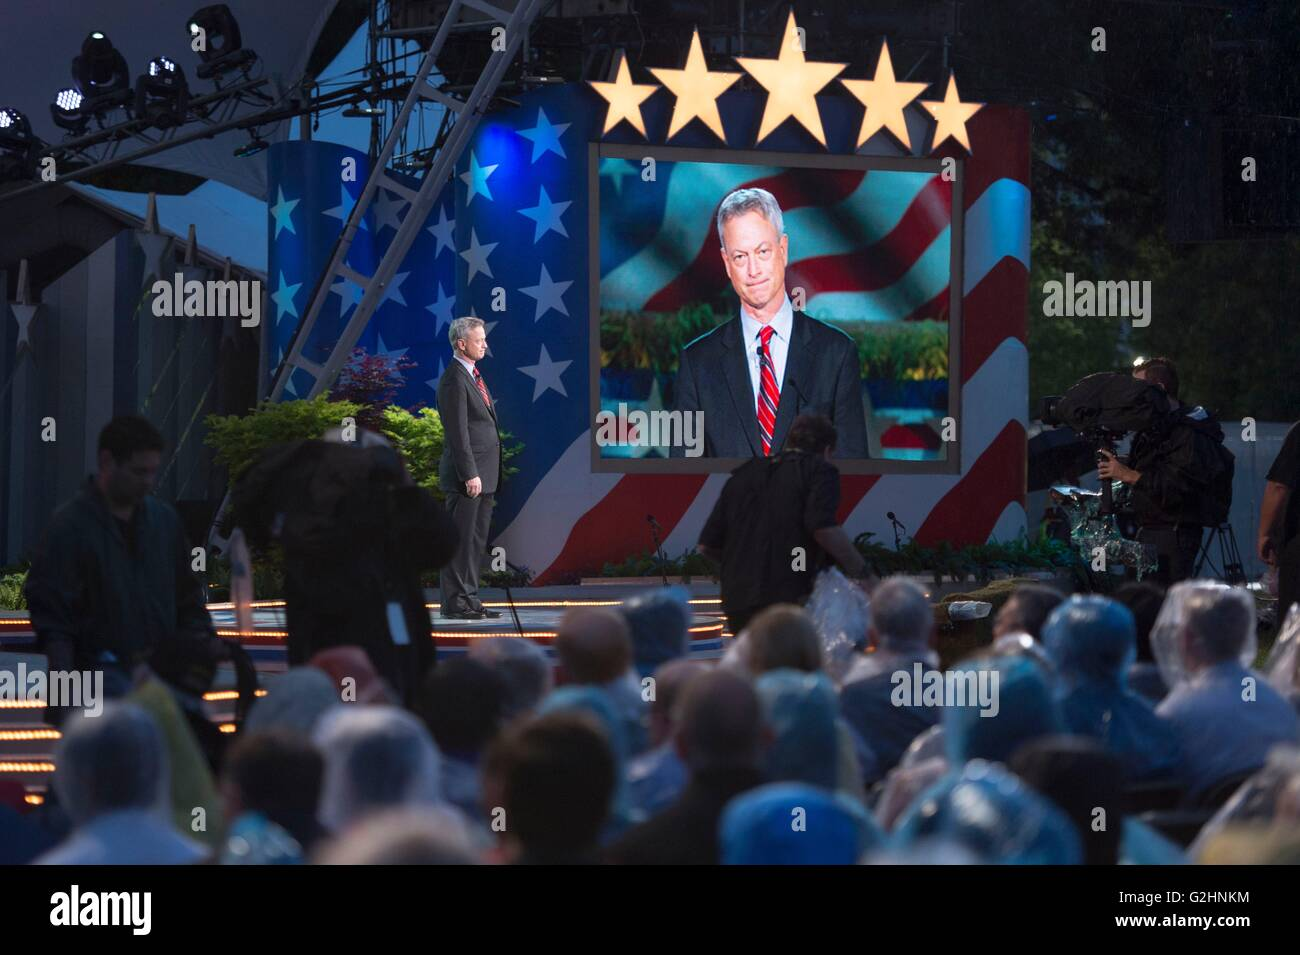 Schauspieler Gary Sinise Host National Memorial Day Concert 29. Mai 2016 in Washington, D.C. Stockbild